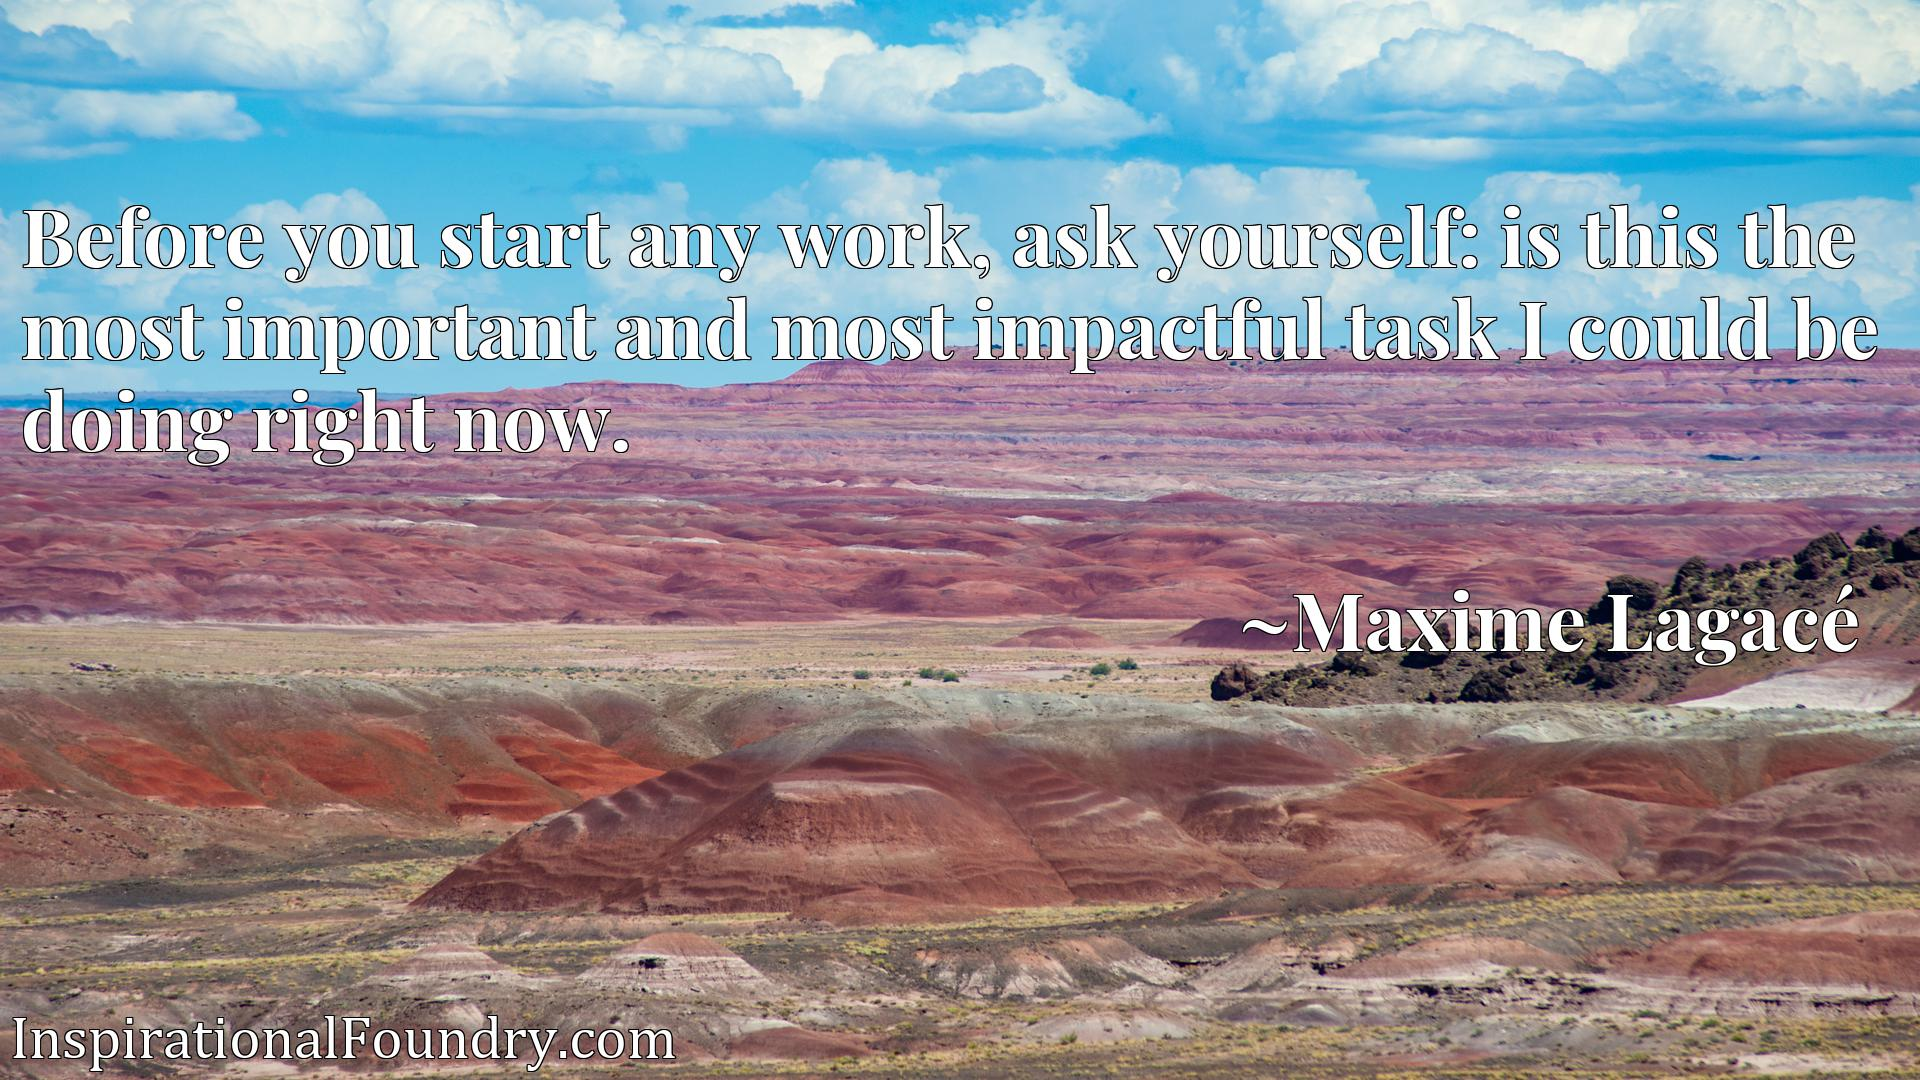 Before you start any work, ask yourself: is this the most important and most impactful task I could be doing right now.